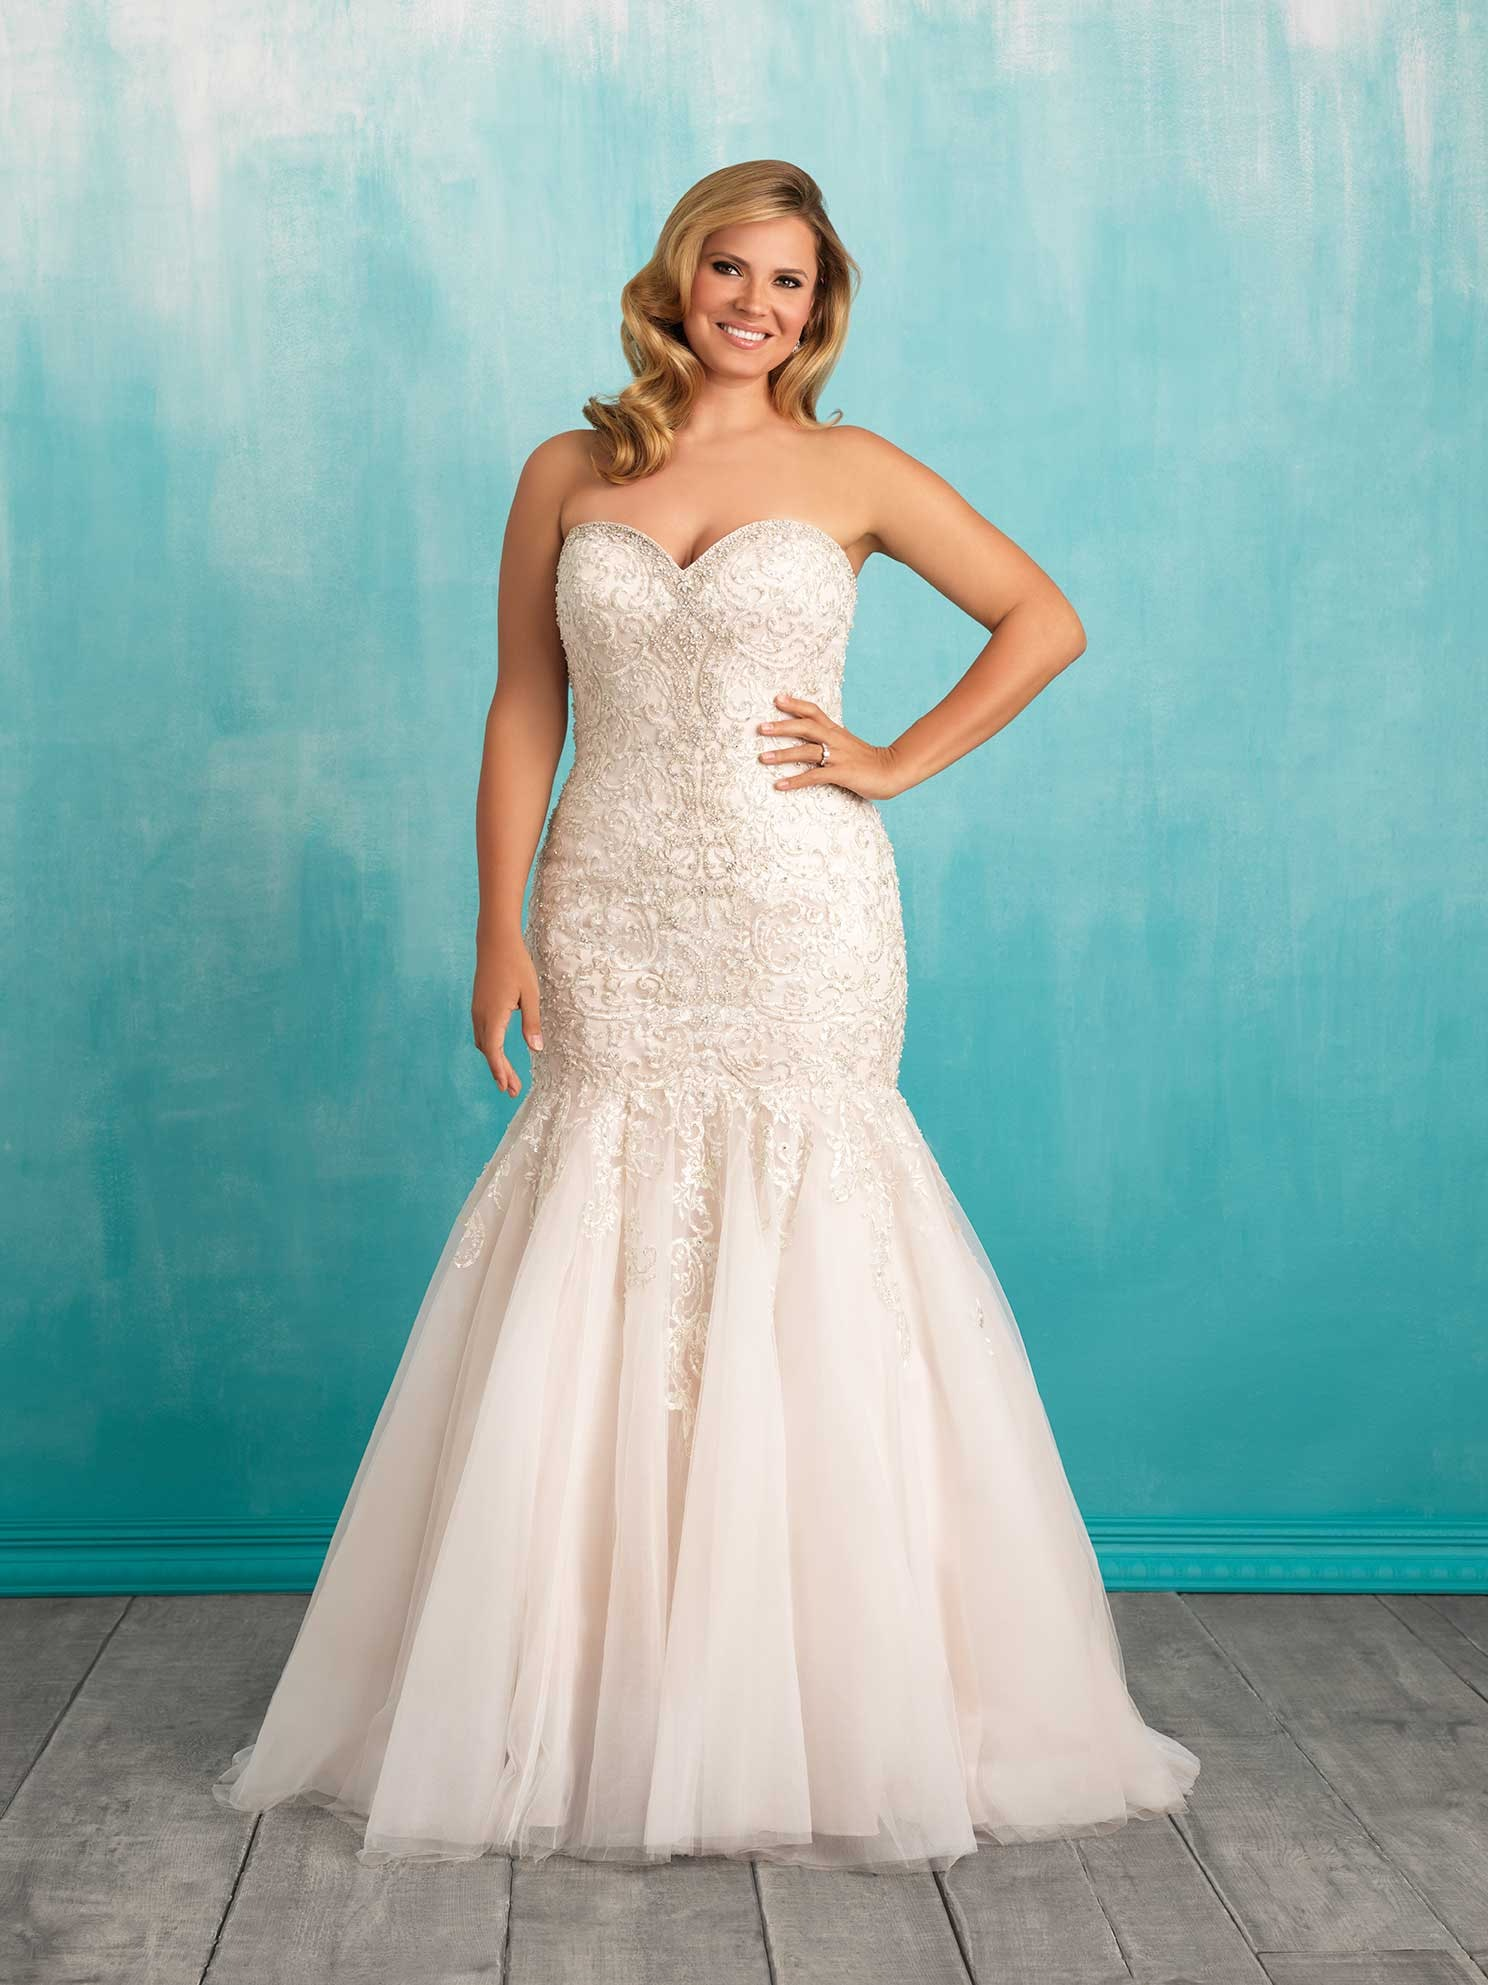 These 8 Plus Size Wedding Gown Designers Are Perfect For Body ...